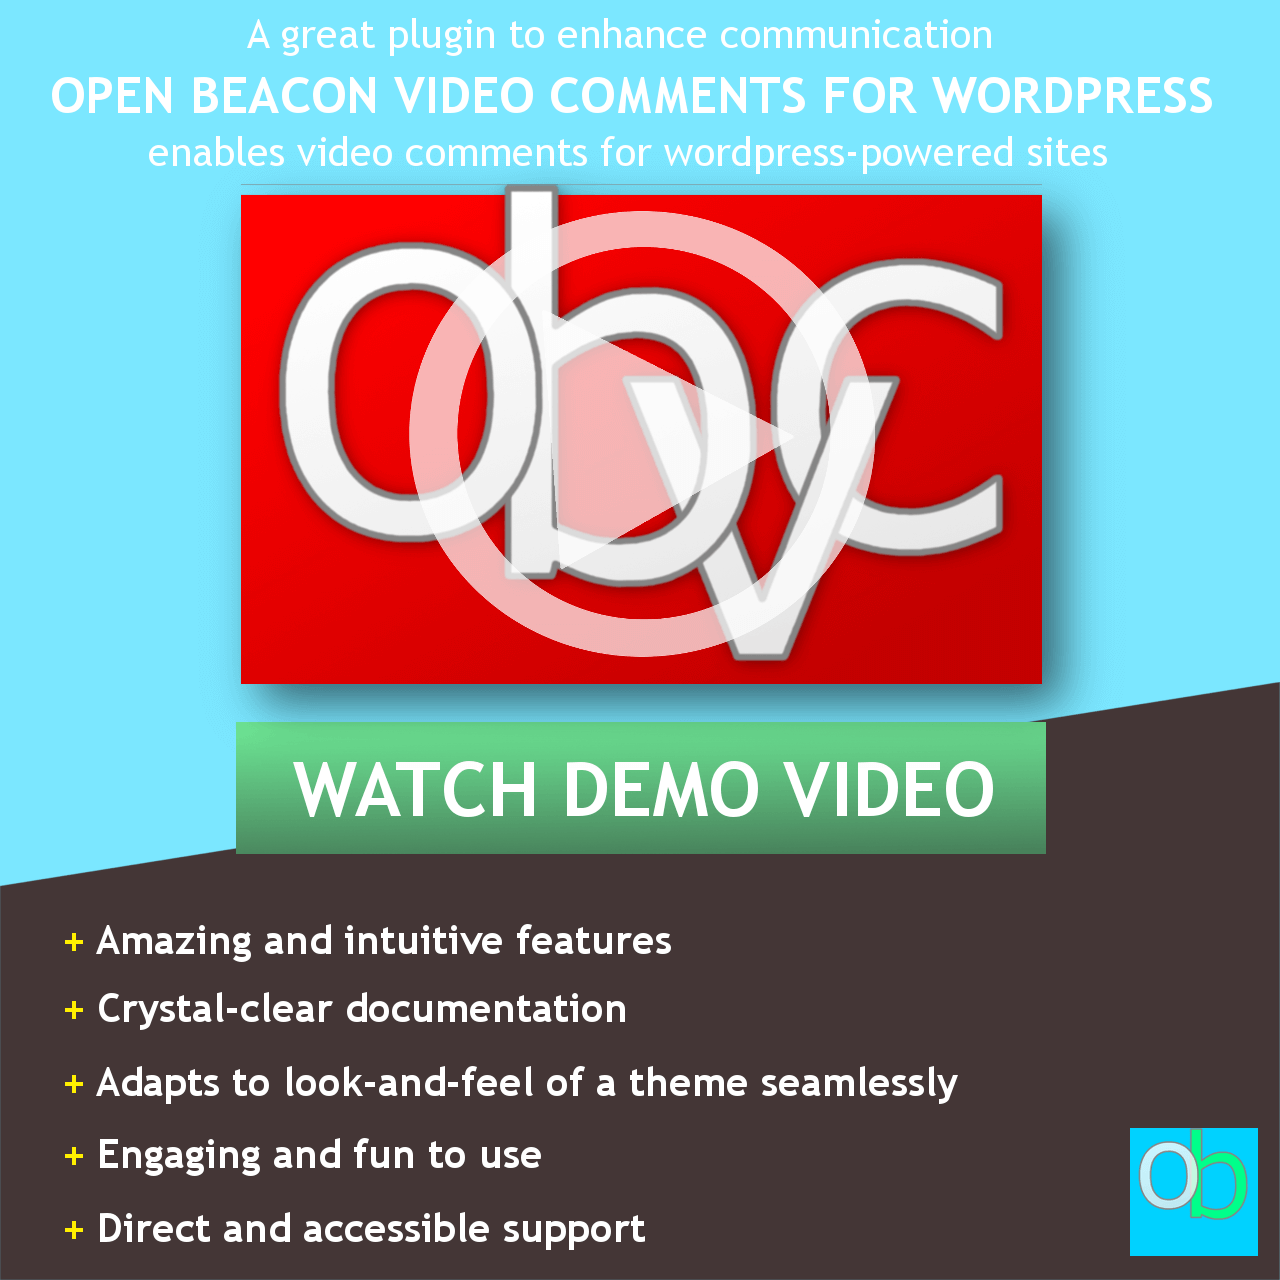 Open Beacon Video Comments for WP Using FFmpeg